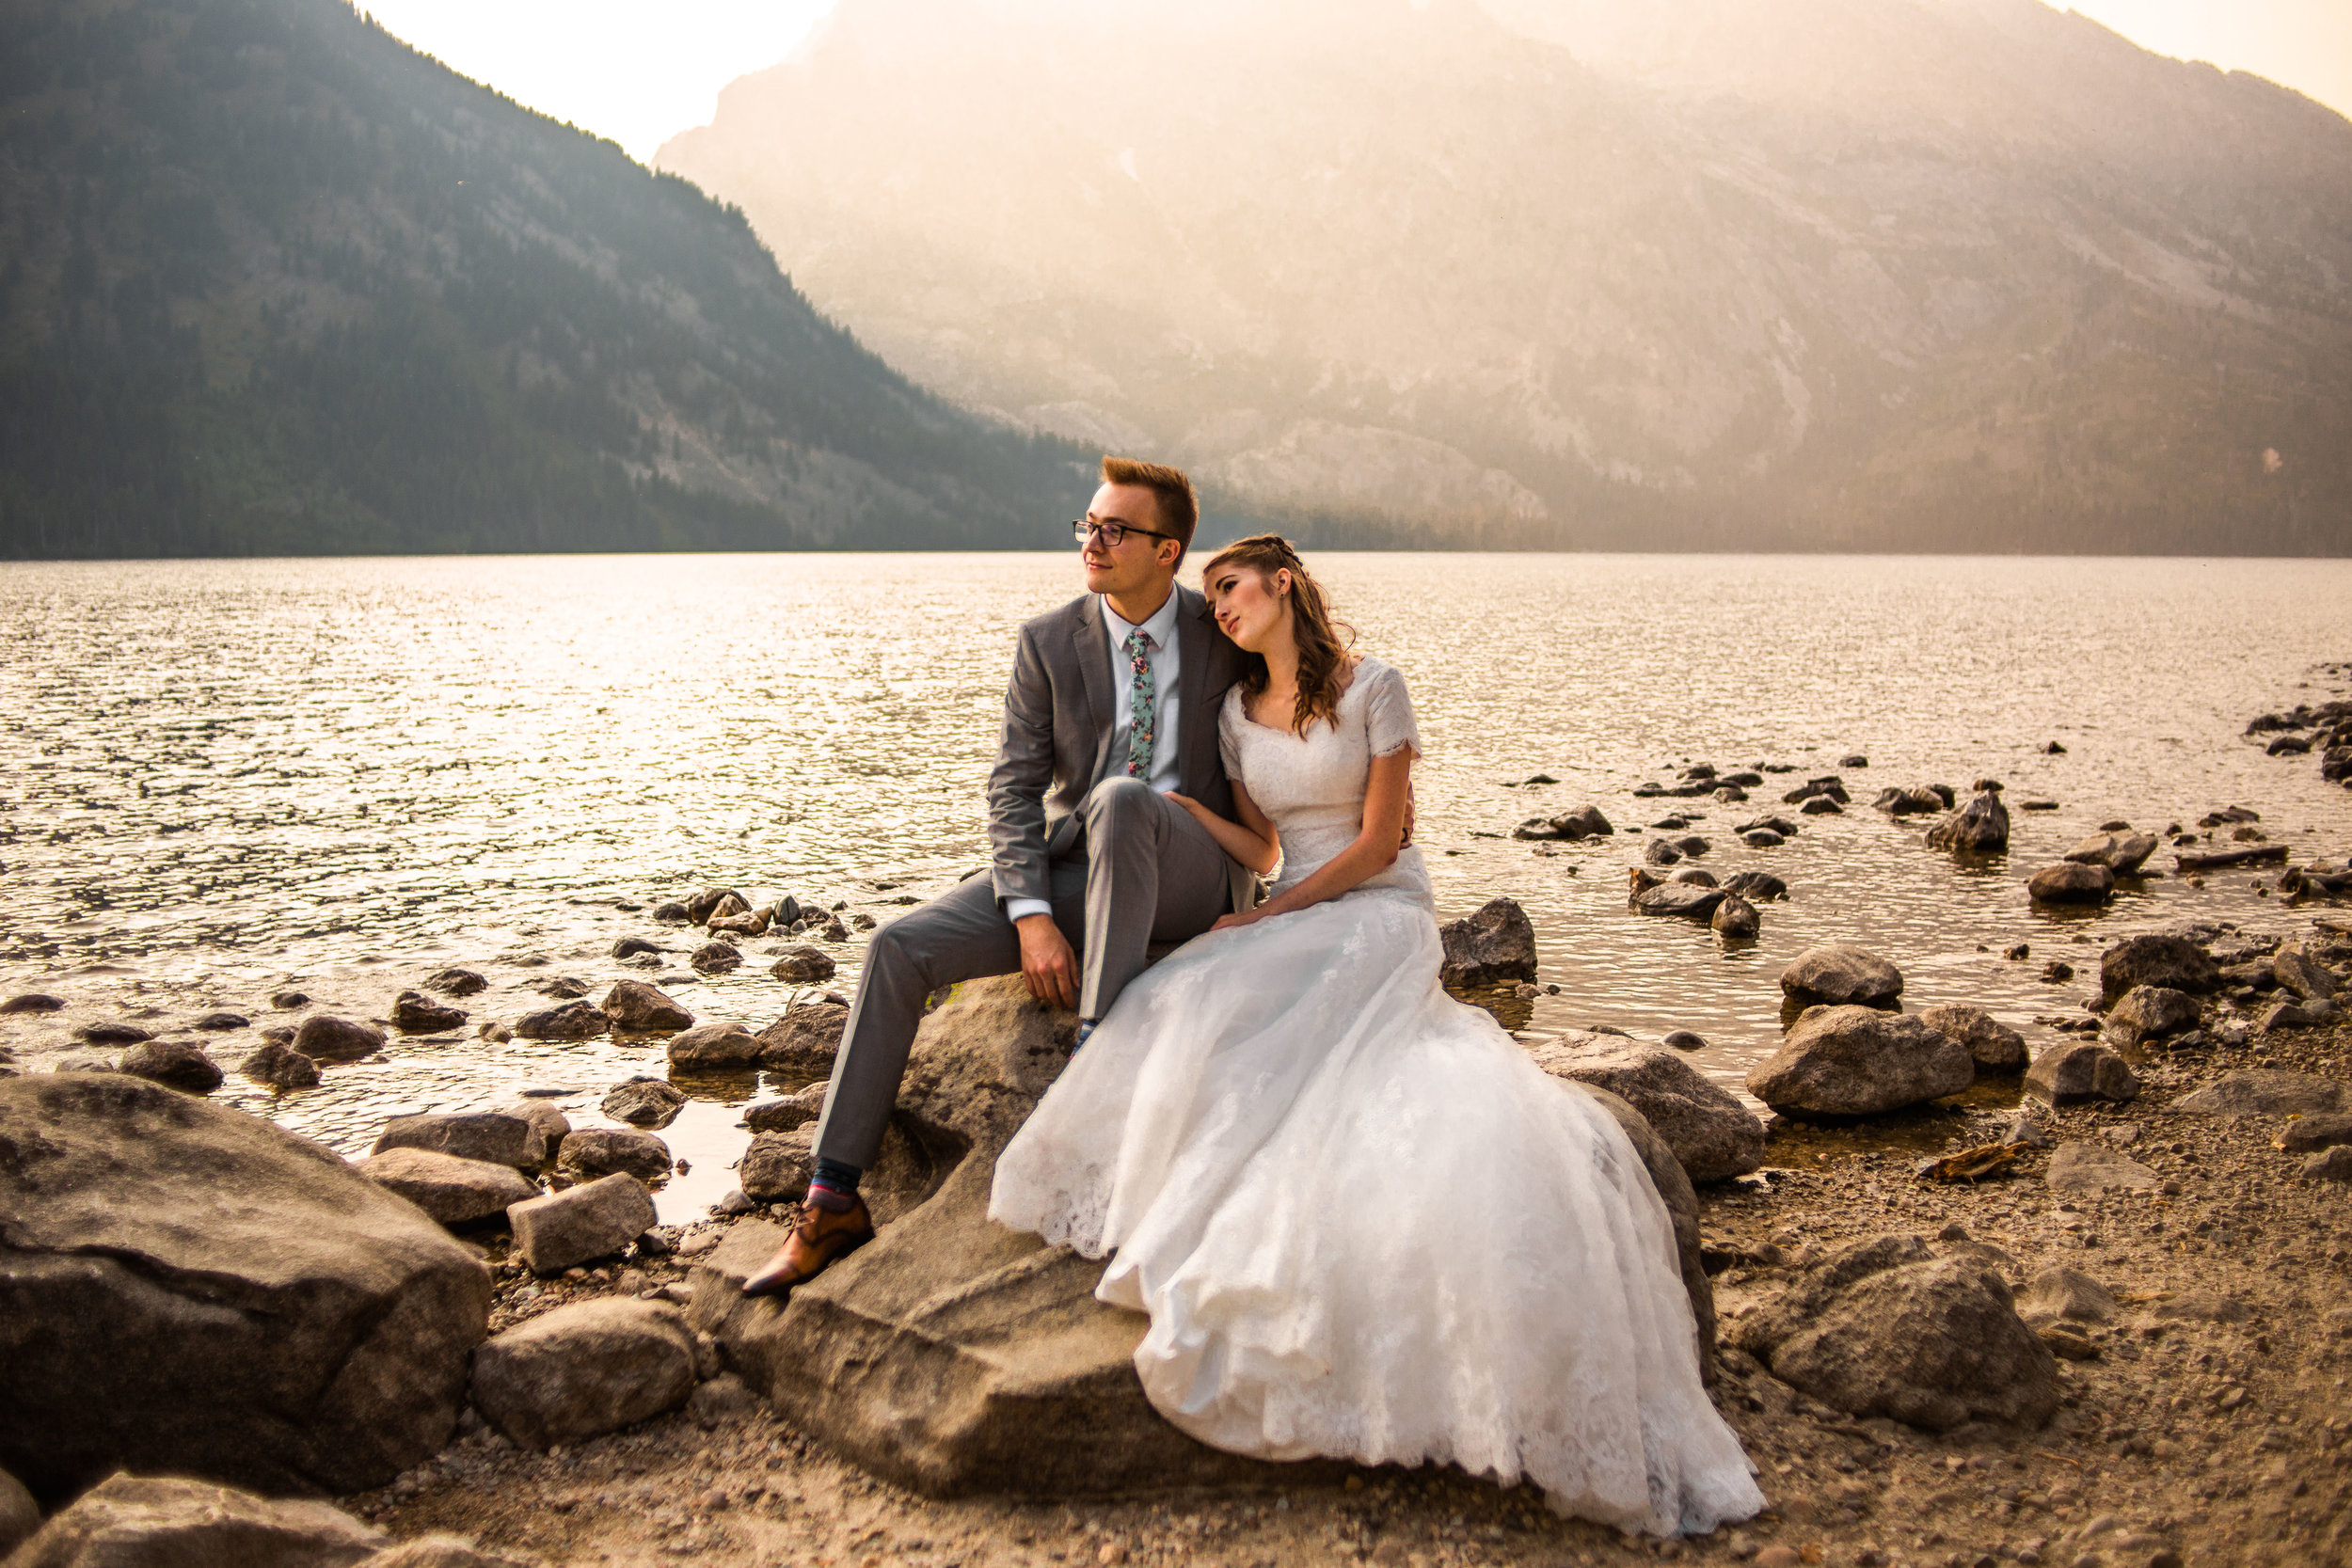 Grand-Teton-National-Park-Bridal-Session38.jpg